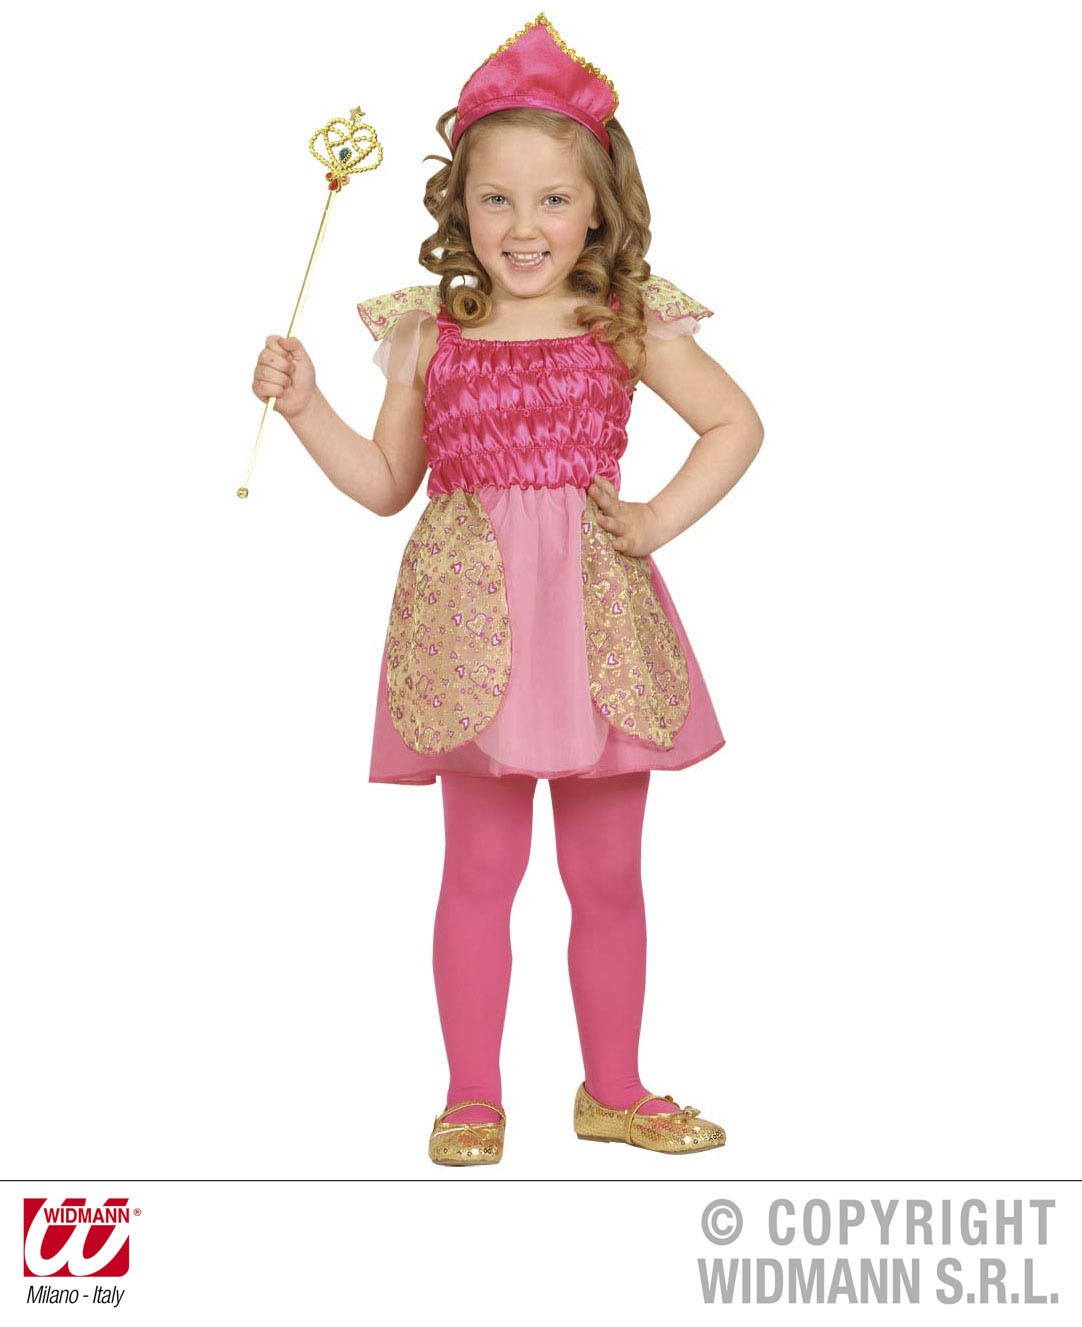 Childrens Pink Princess Fancy Dress Costume Fairy Tale Princess Outfit 2-3 Yrs